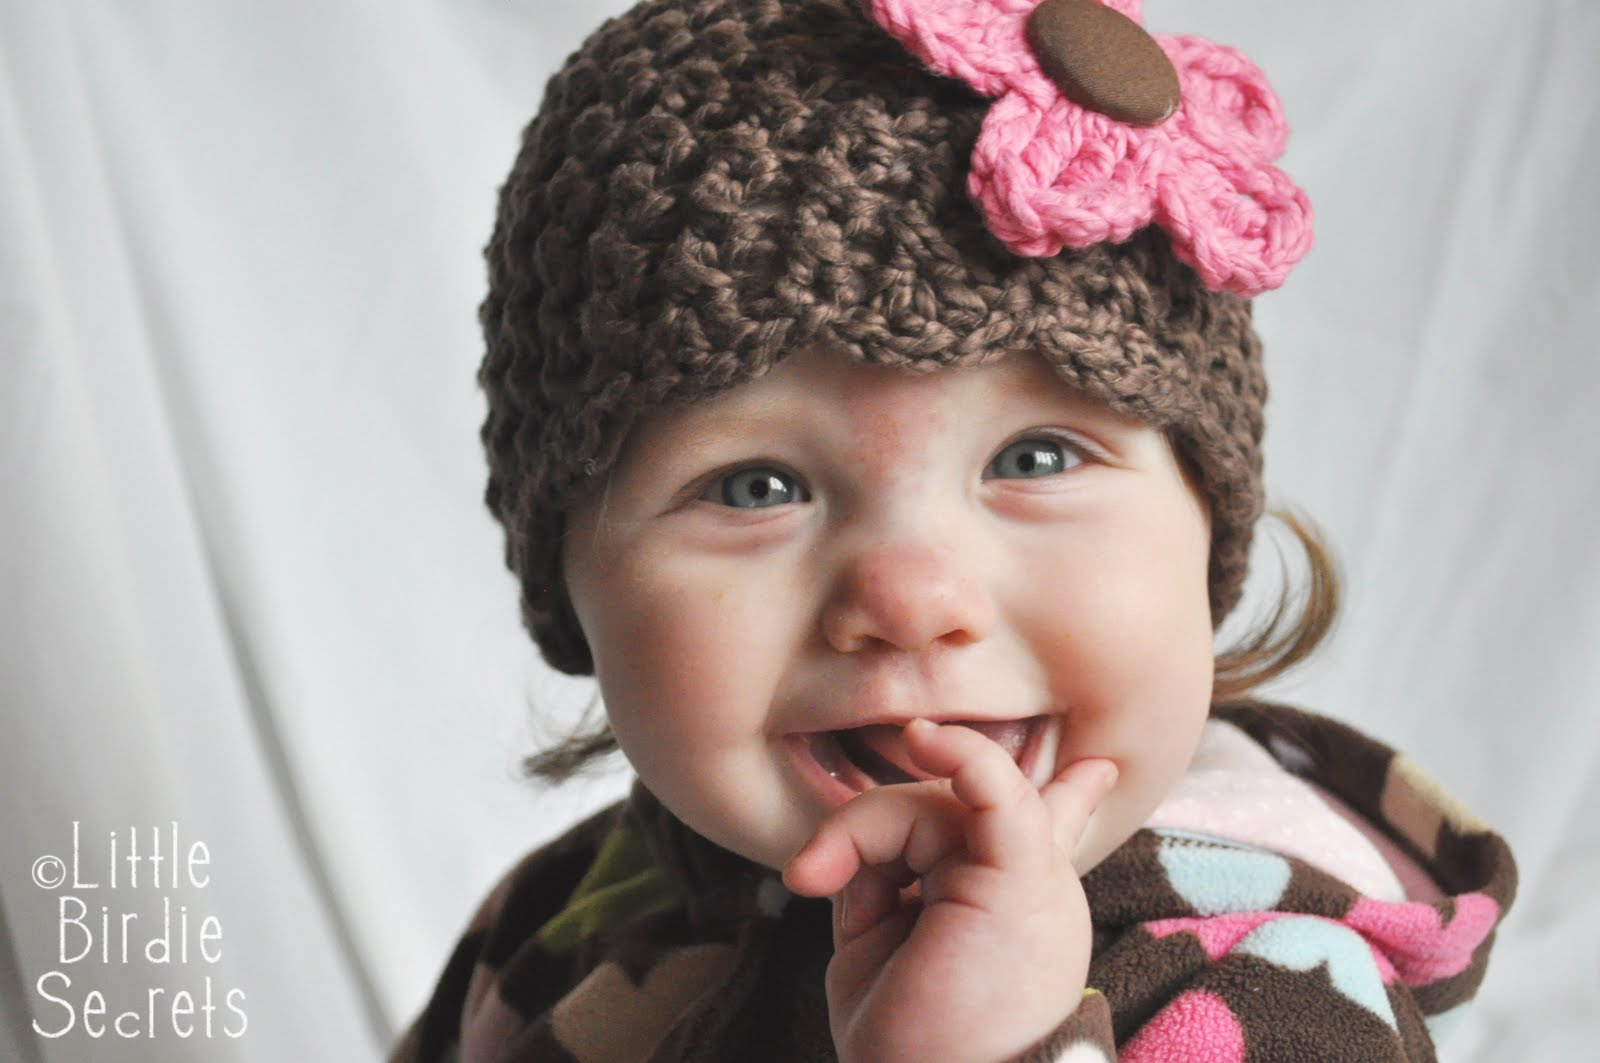 CROCHETED BEANIE HAT PATTERN - Crochet Club